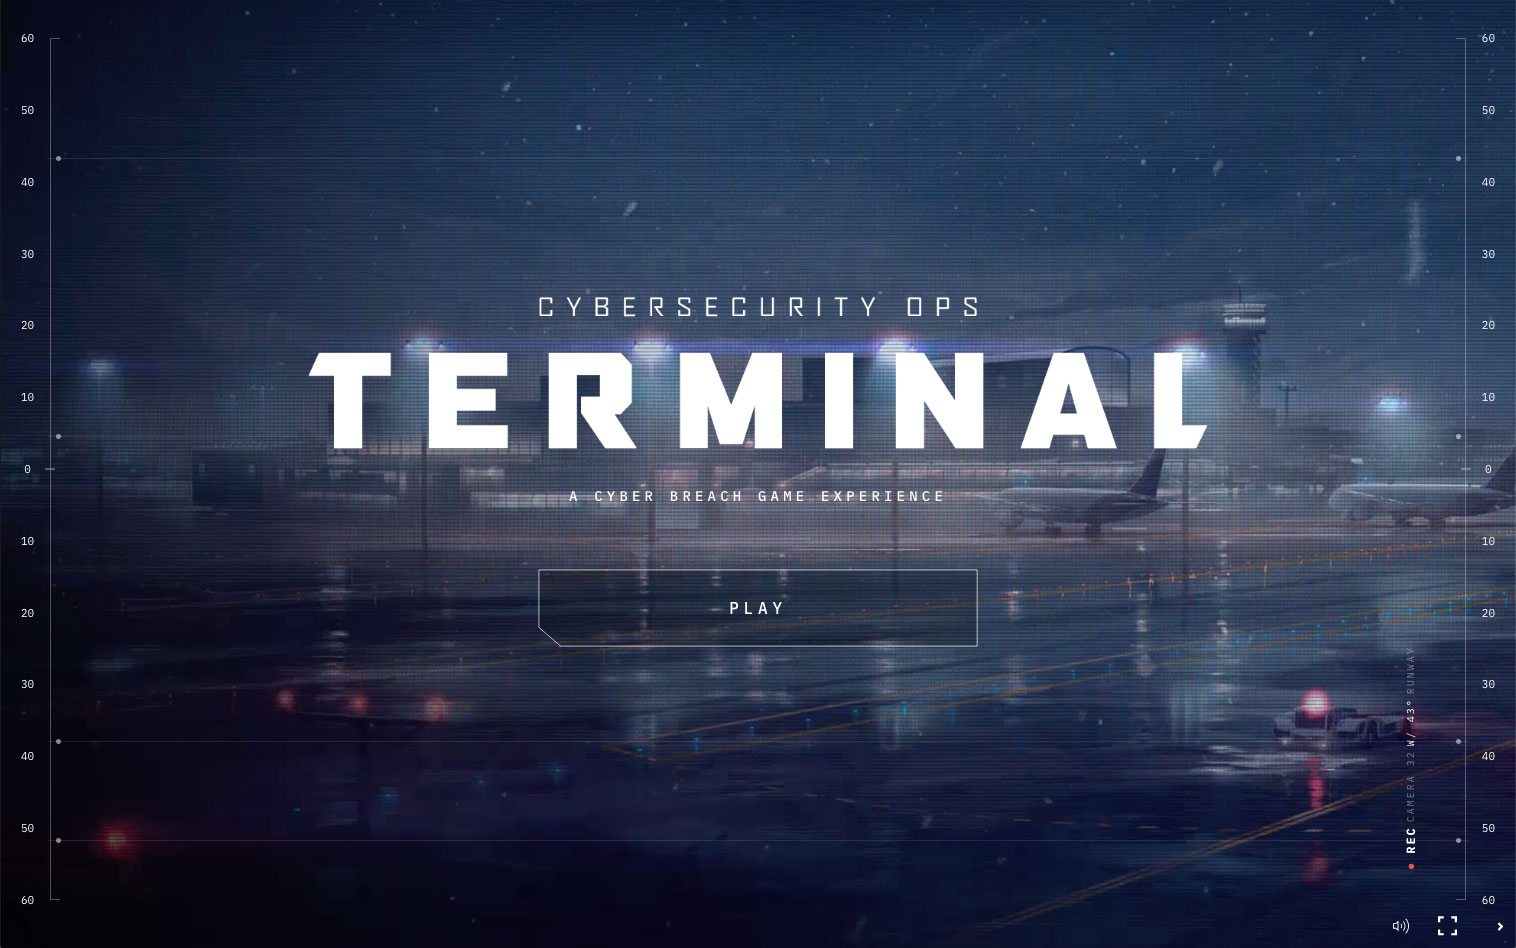 Cybersecurity OPS, Terminal